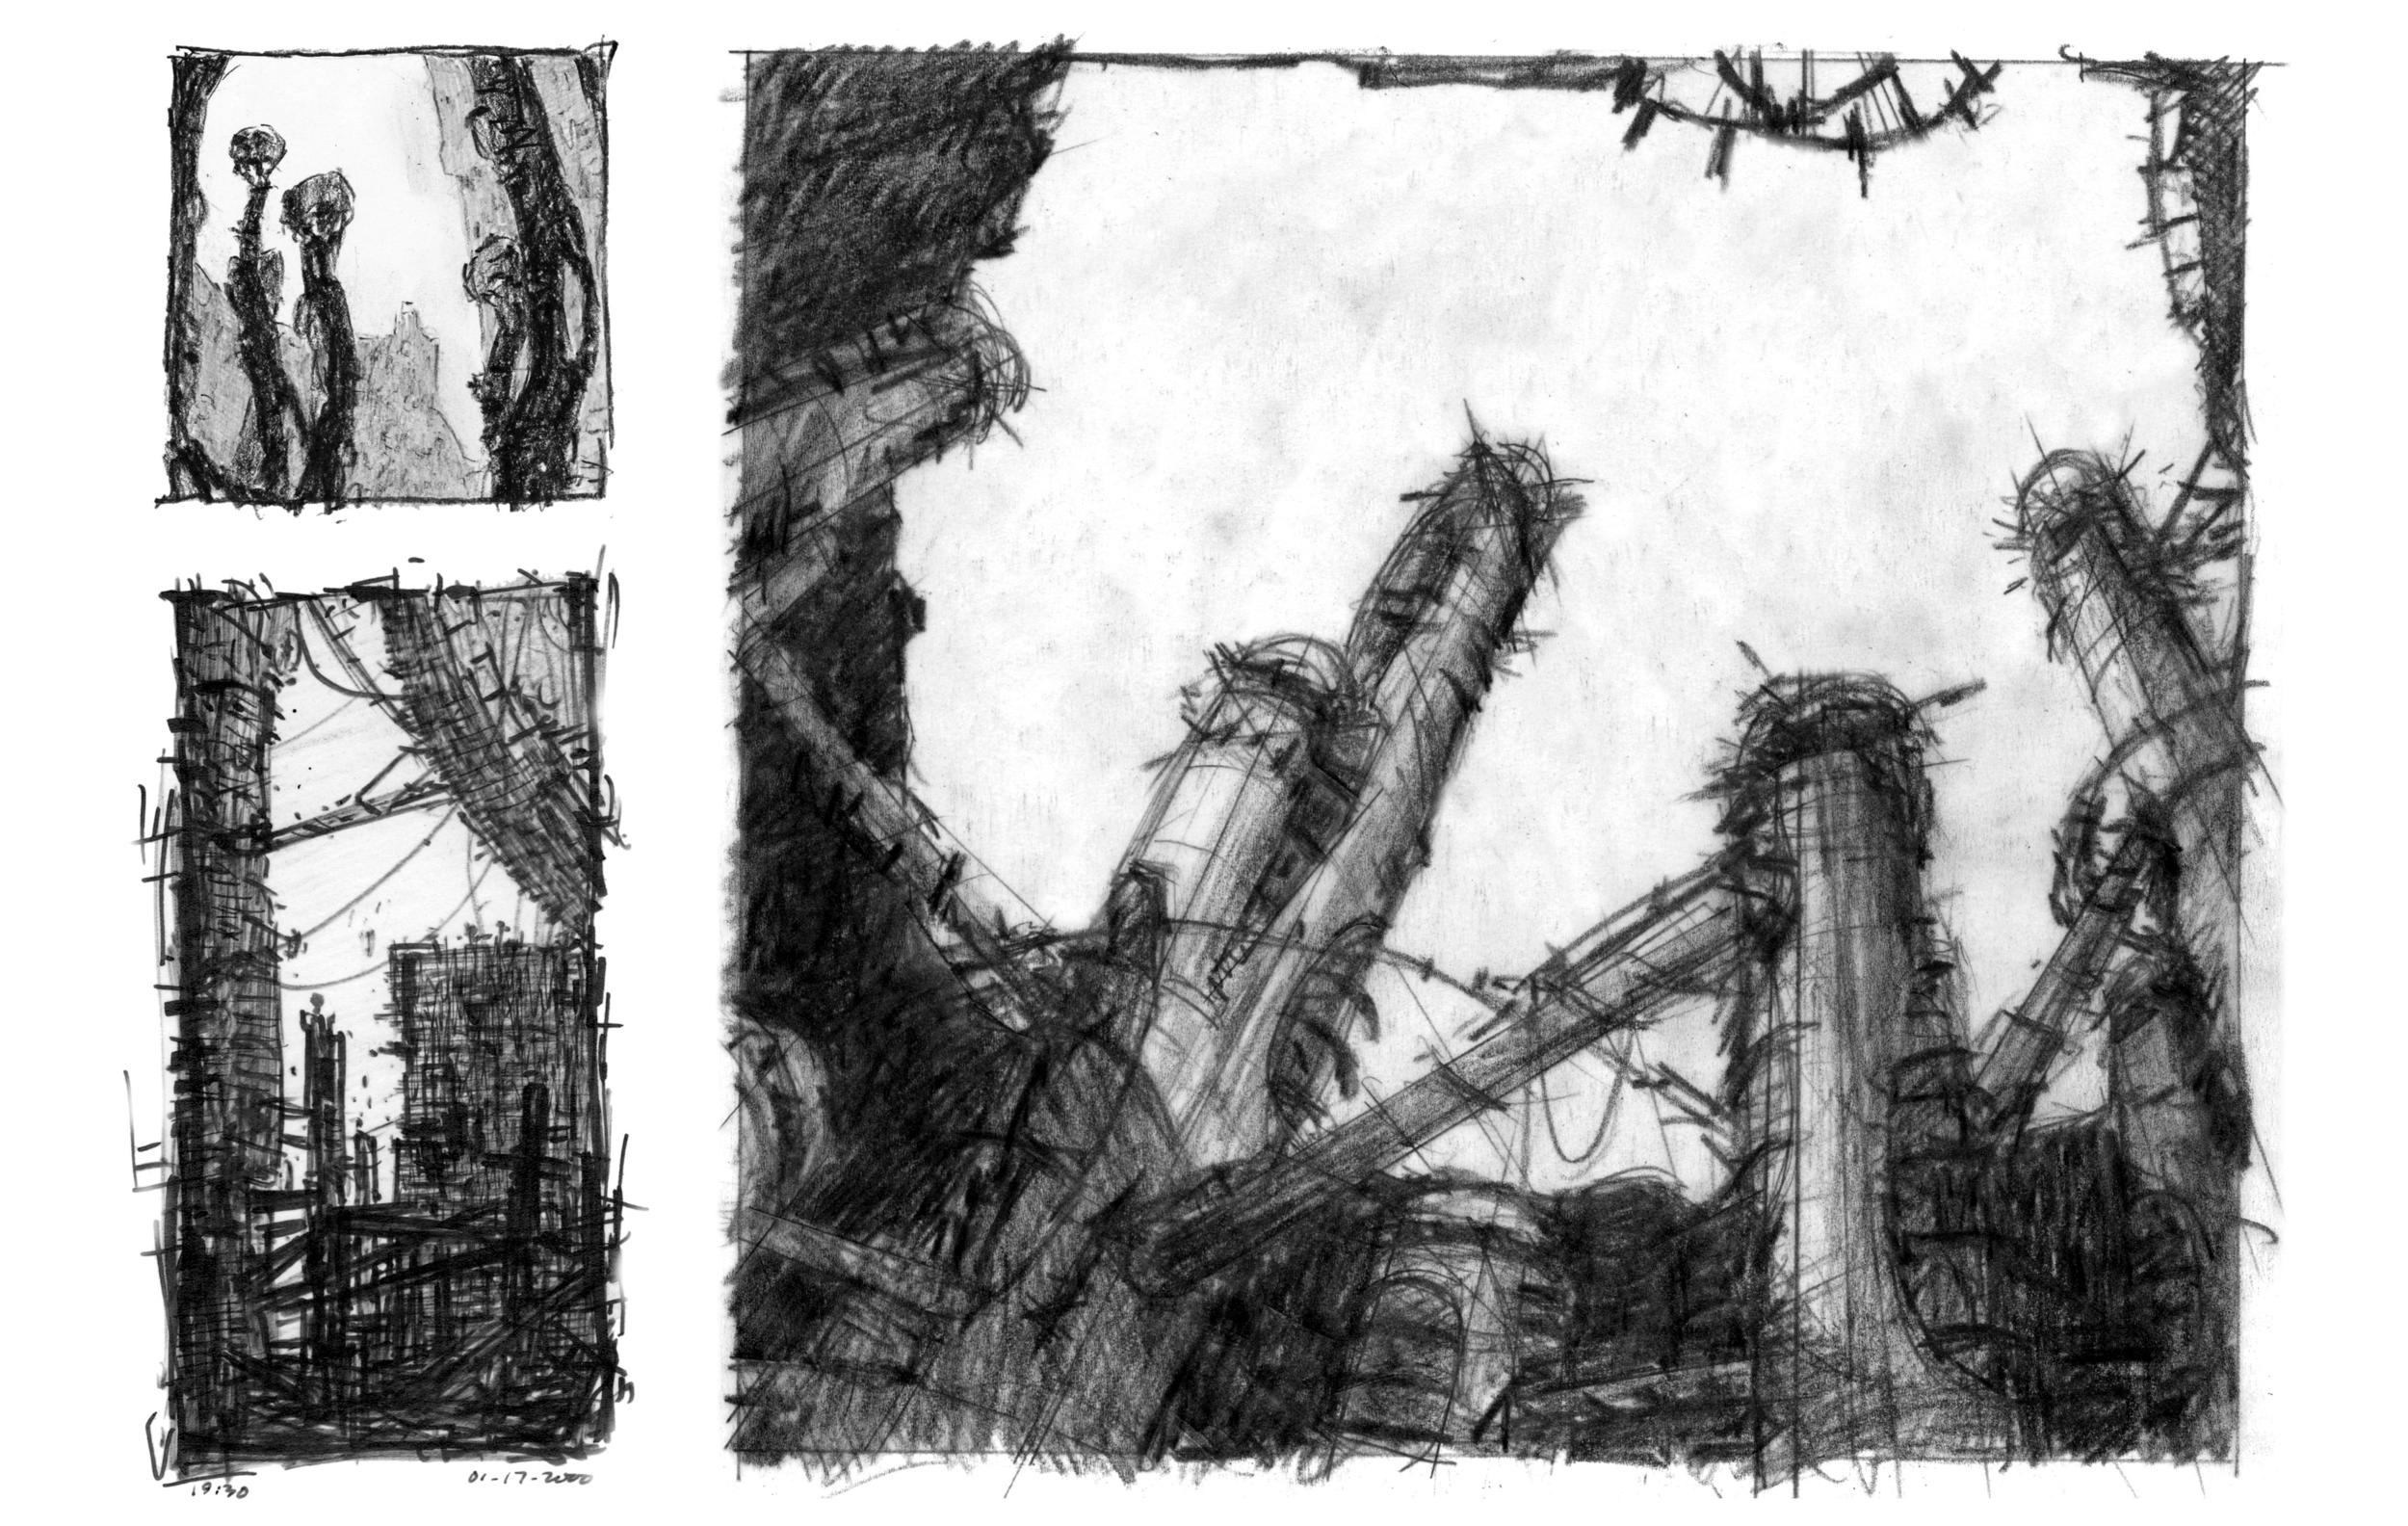 Sinkhole Sketches - Page1.jpg